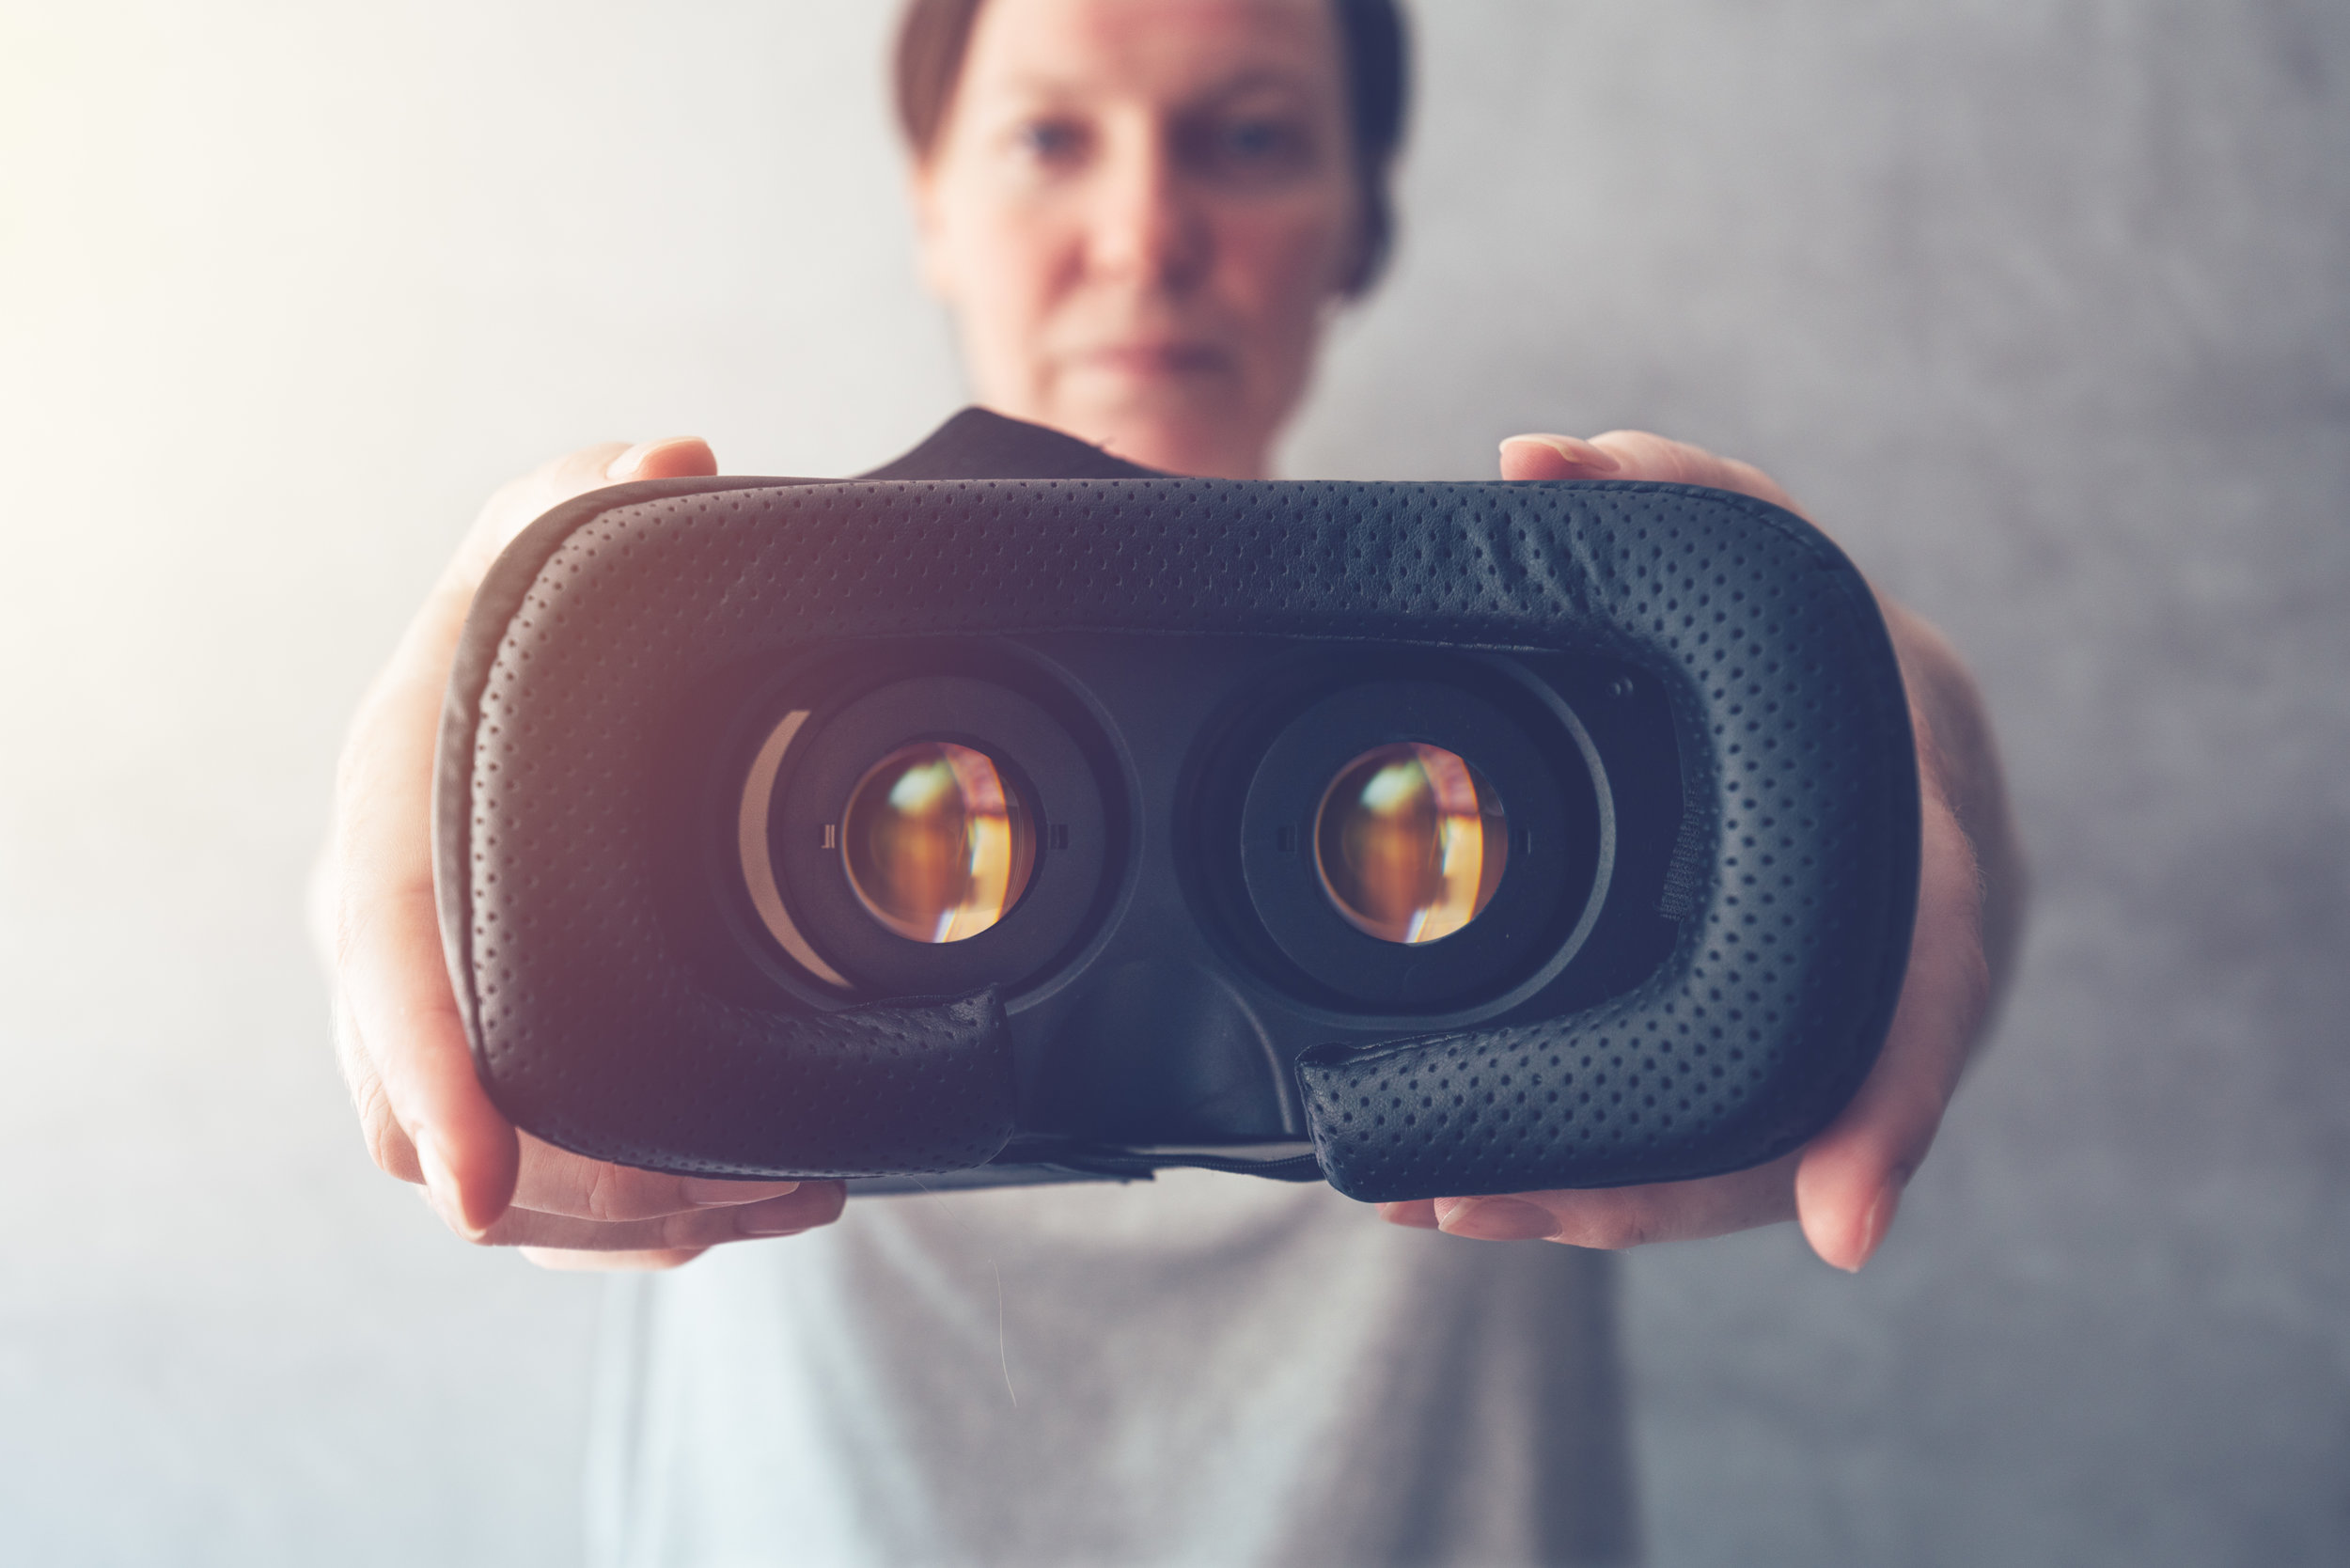 woman-offering-vr-headset-BXEKQ7C.jpg